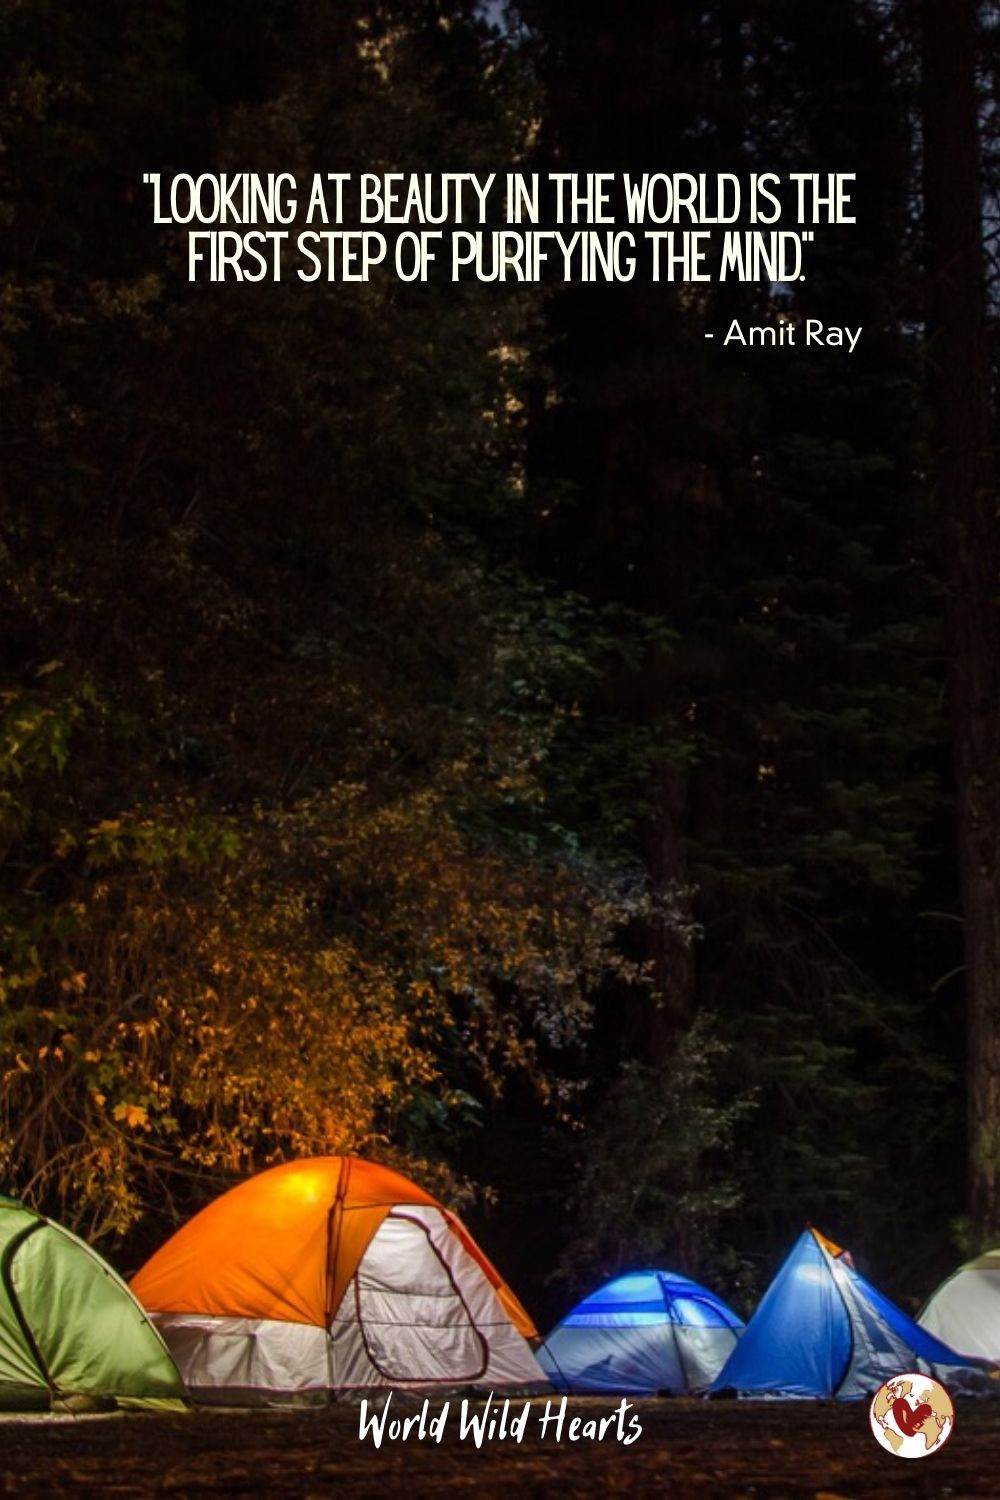 Camping nature quote